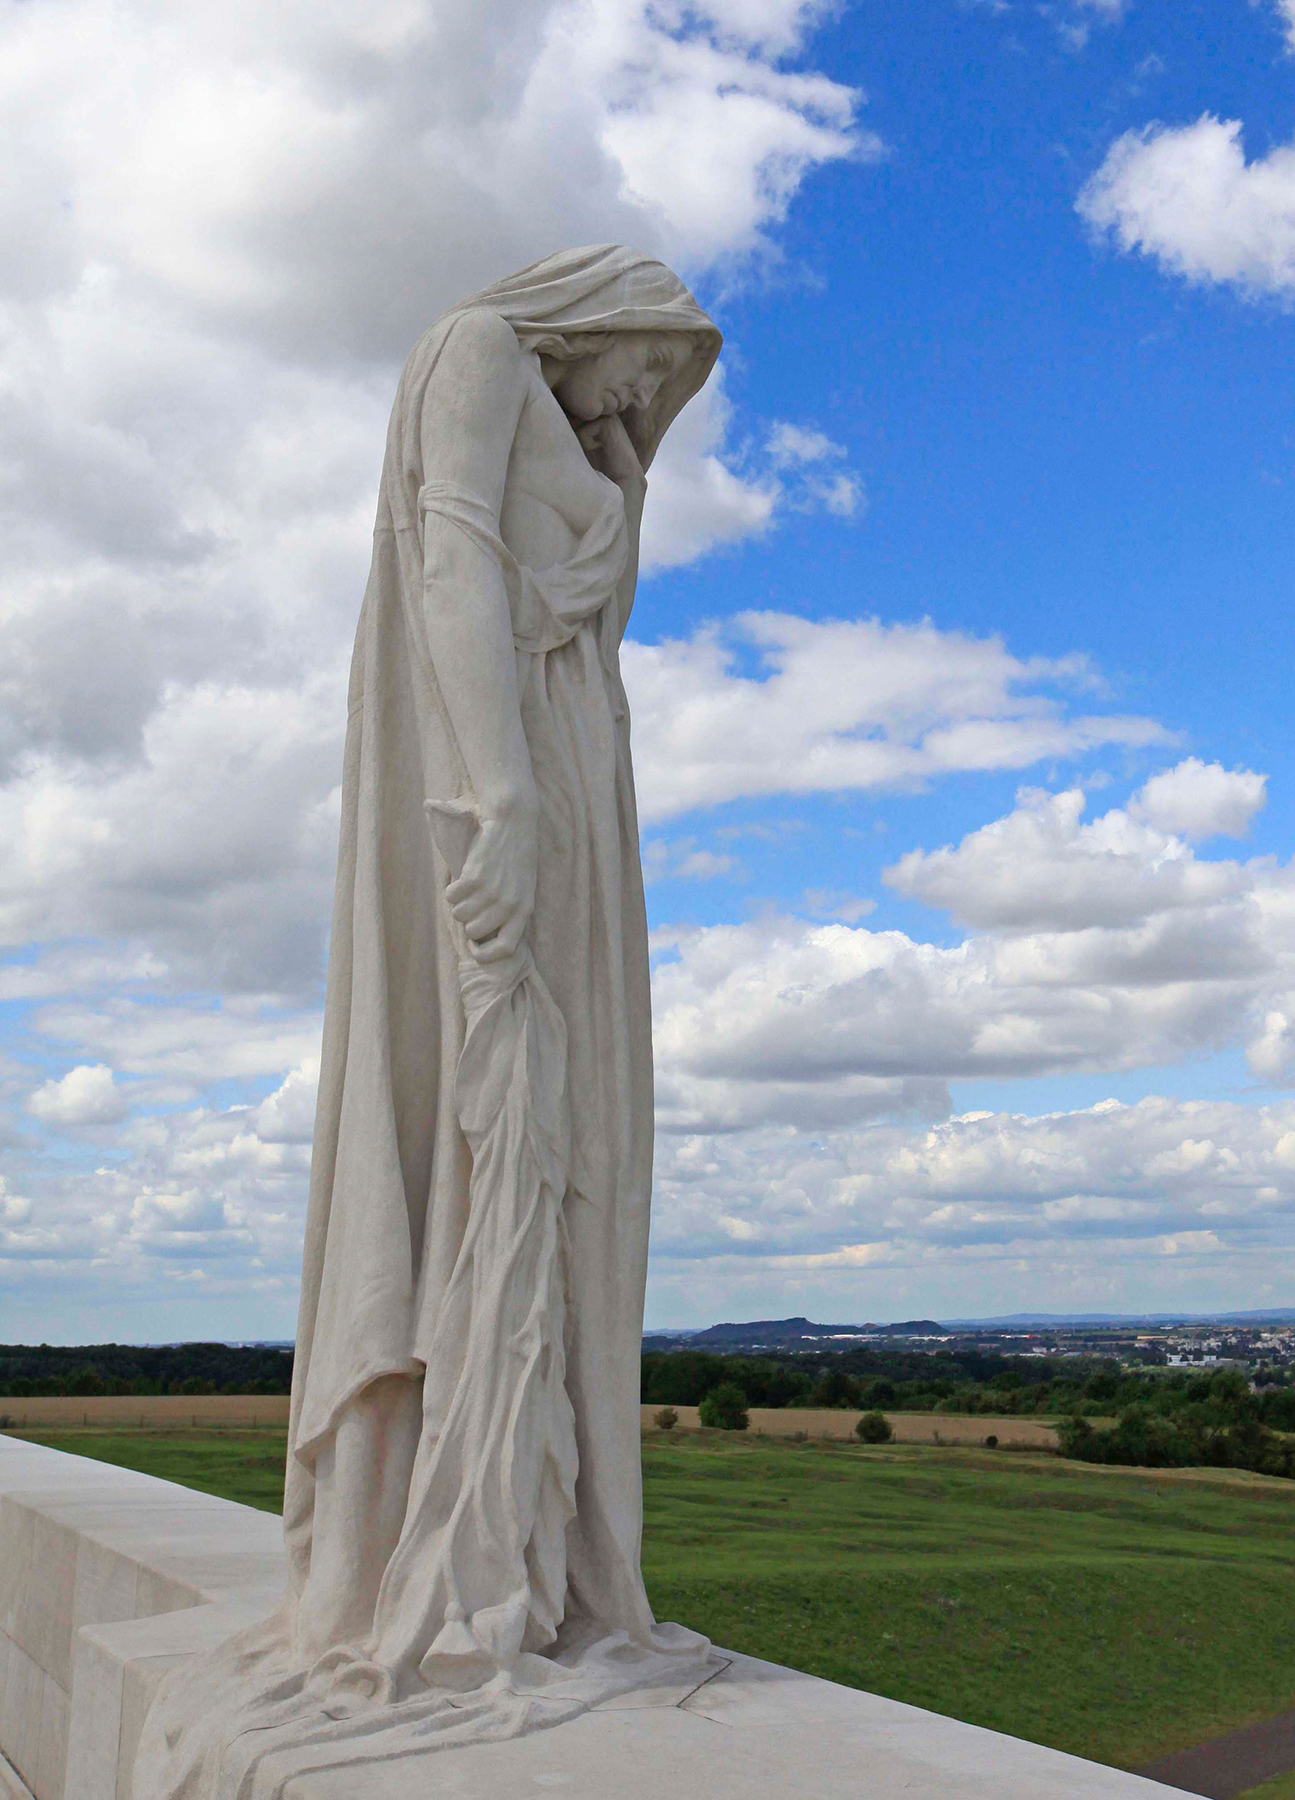 Designed by Canadian sculptor and architect Walter Seymour Allward, the Canadian National Vimy Memorial took 11 years to build. Twenty sculpted, symbolic figures grace the monument, each carved where they now stand from huge blocks of limestone. The largest, a mourning figure known as Canada Bereft, was carved from a single 30-tonne block. Head bowed in sorrow, she provides a powerful representation of Canada, a young nation grieving her dead. Carved on the walls of the monument are the names of 11,285 Canadian soldiers who were killed in France and whose final resting place was then unknown. PHOTO: Veterans Affairs Canada